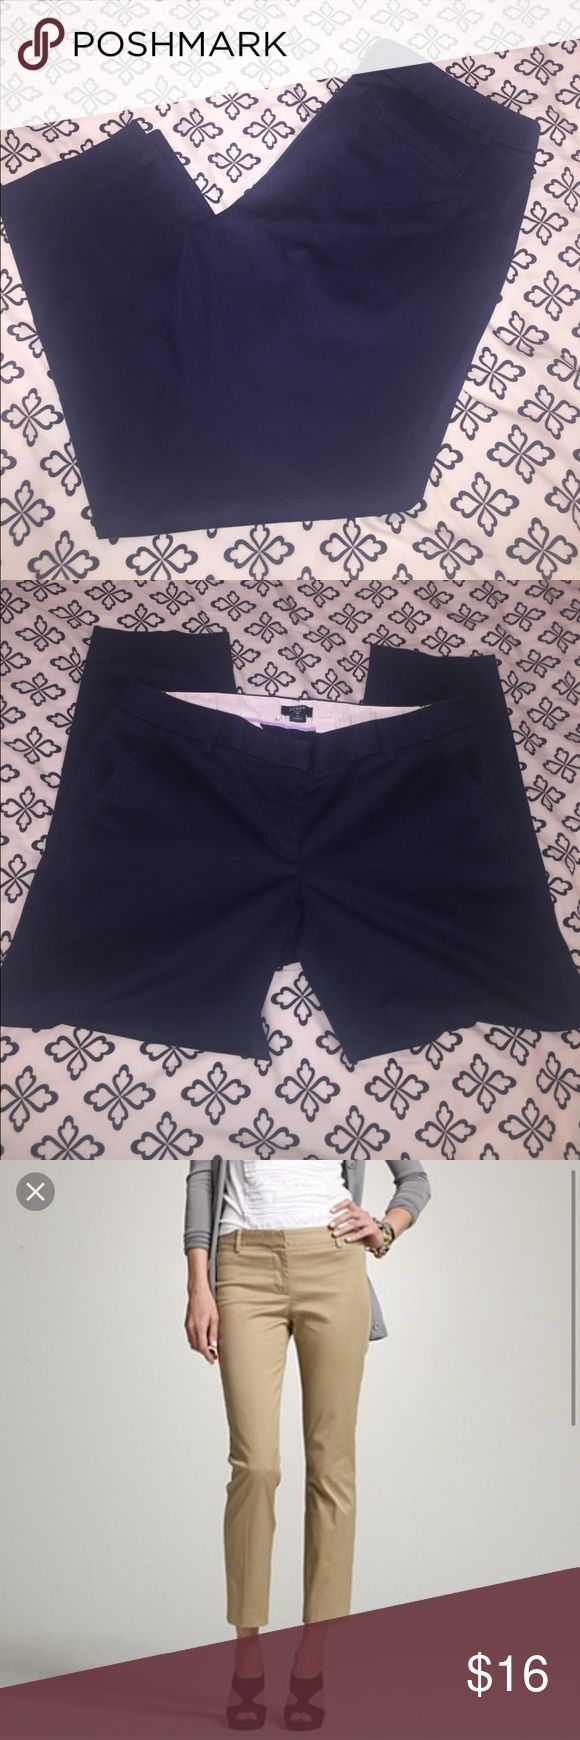 J Crew City Fit pants Gently used navy pants. Color is still vibrant no signs of fading. Measurements are as follows: laying flat 18 inches across where belt loops are located, length 34 inches. They do stretch :) OFFERS WELCOMED 🎀 J. Crew Pants Ankle & Cropped